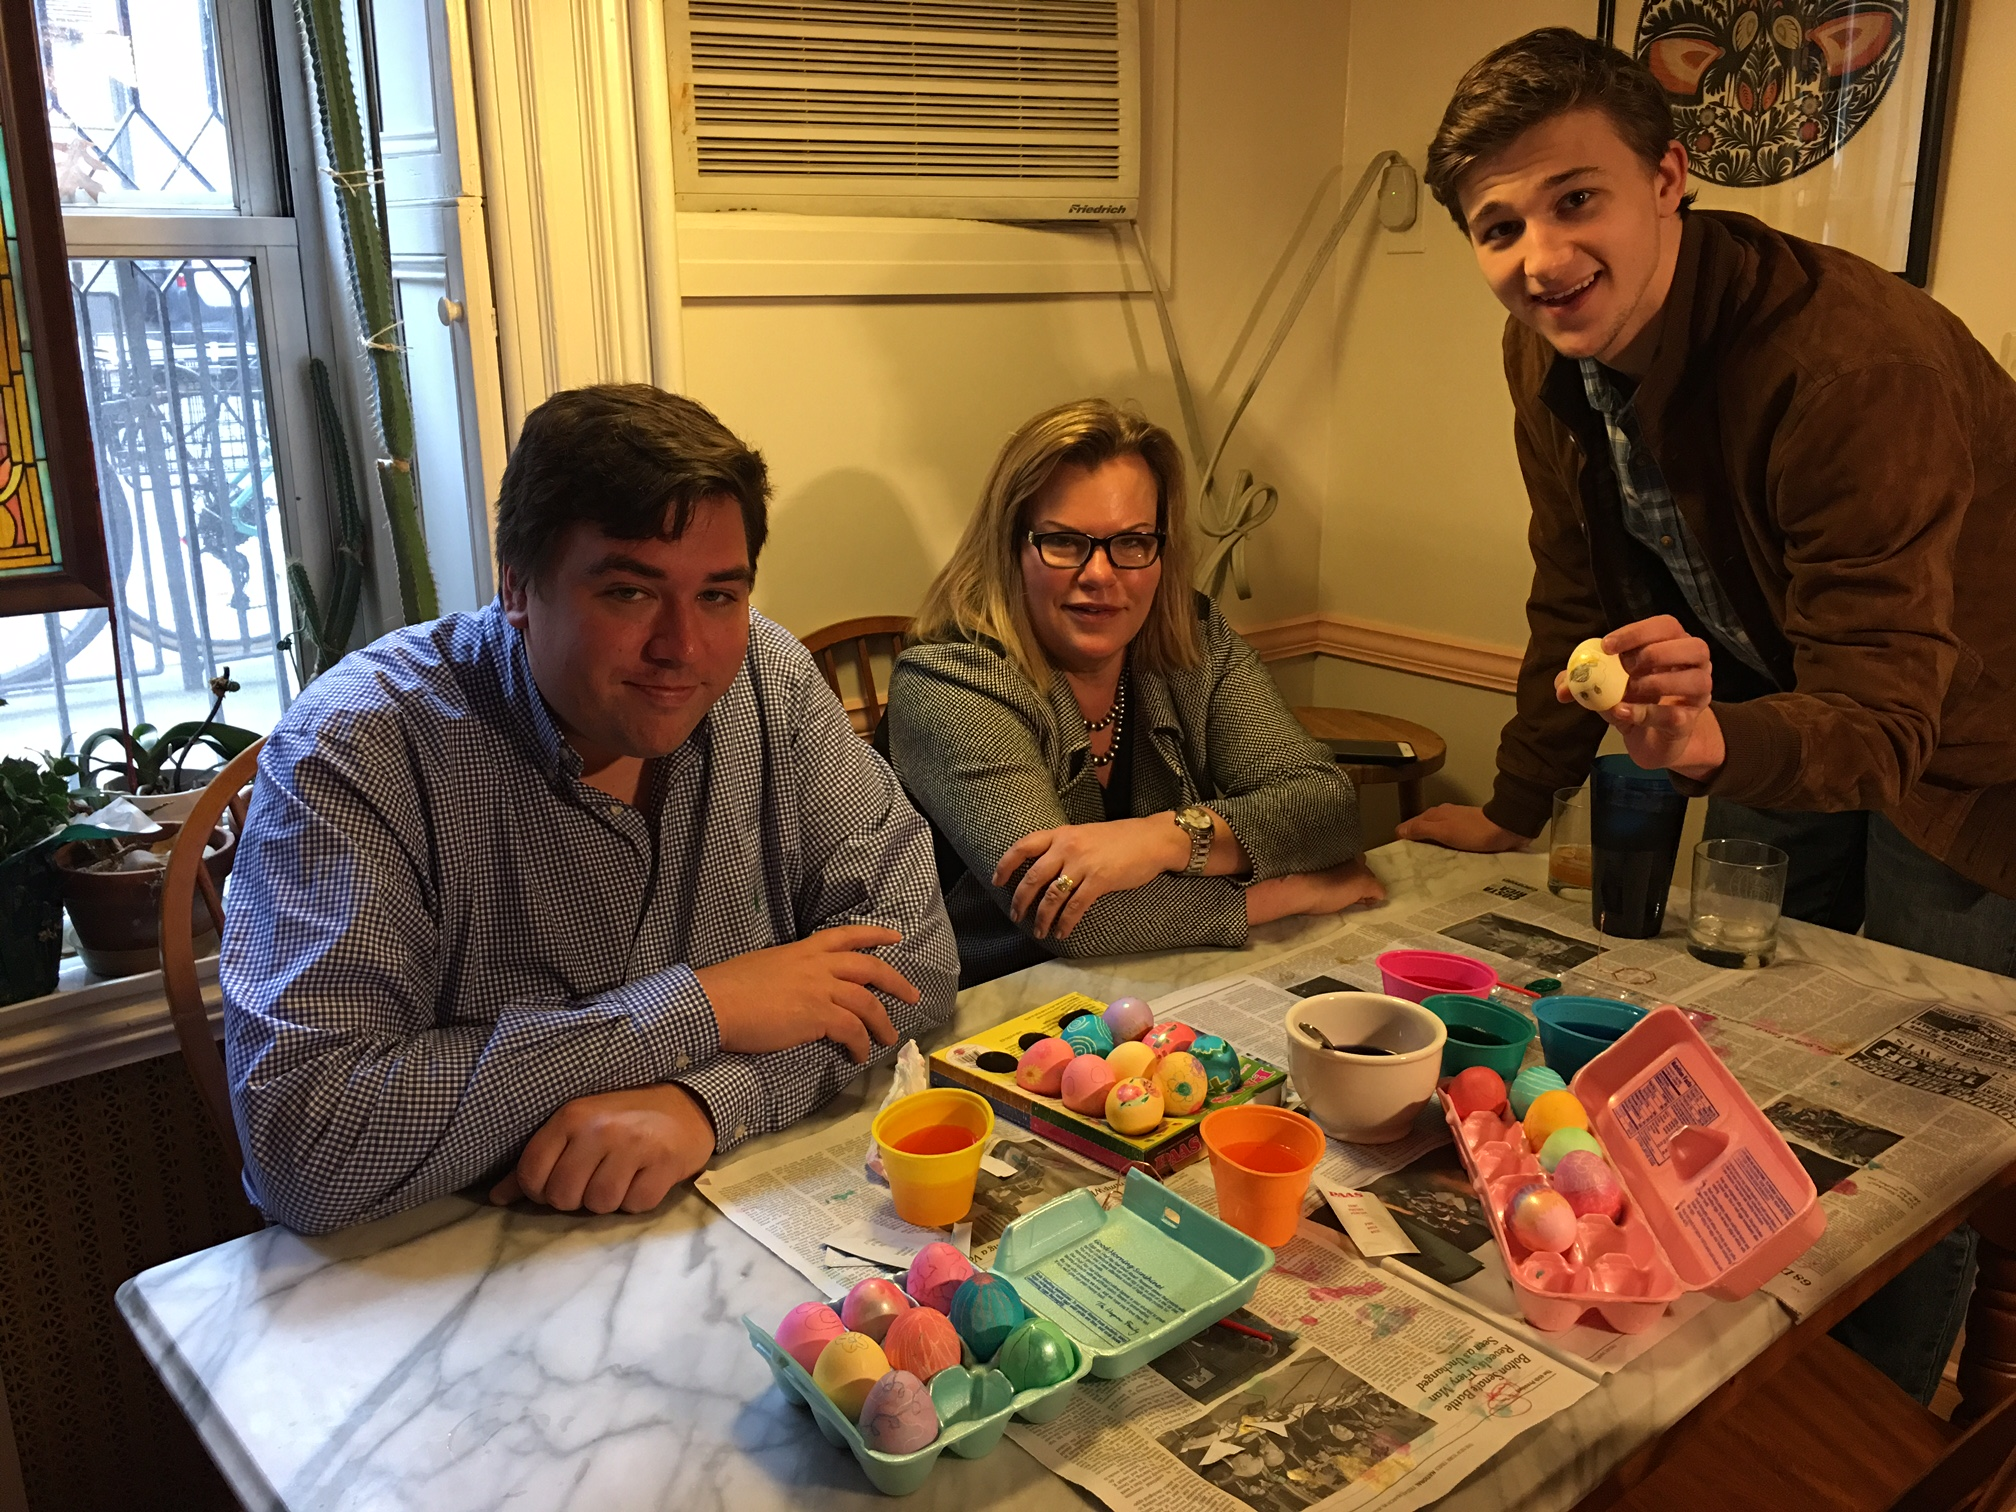 Greg, Celeste, & Jack  Easter, April 1, 2018